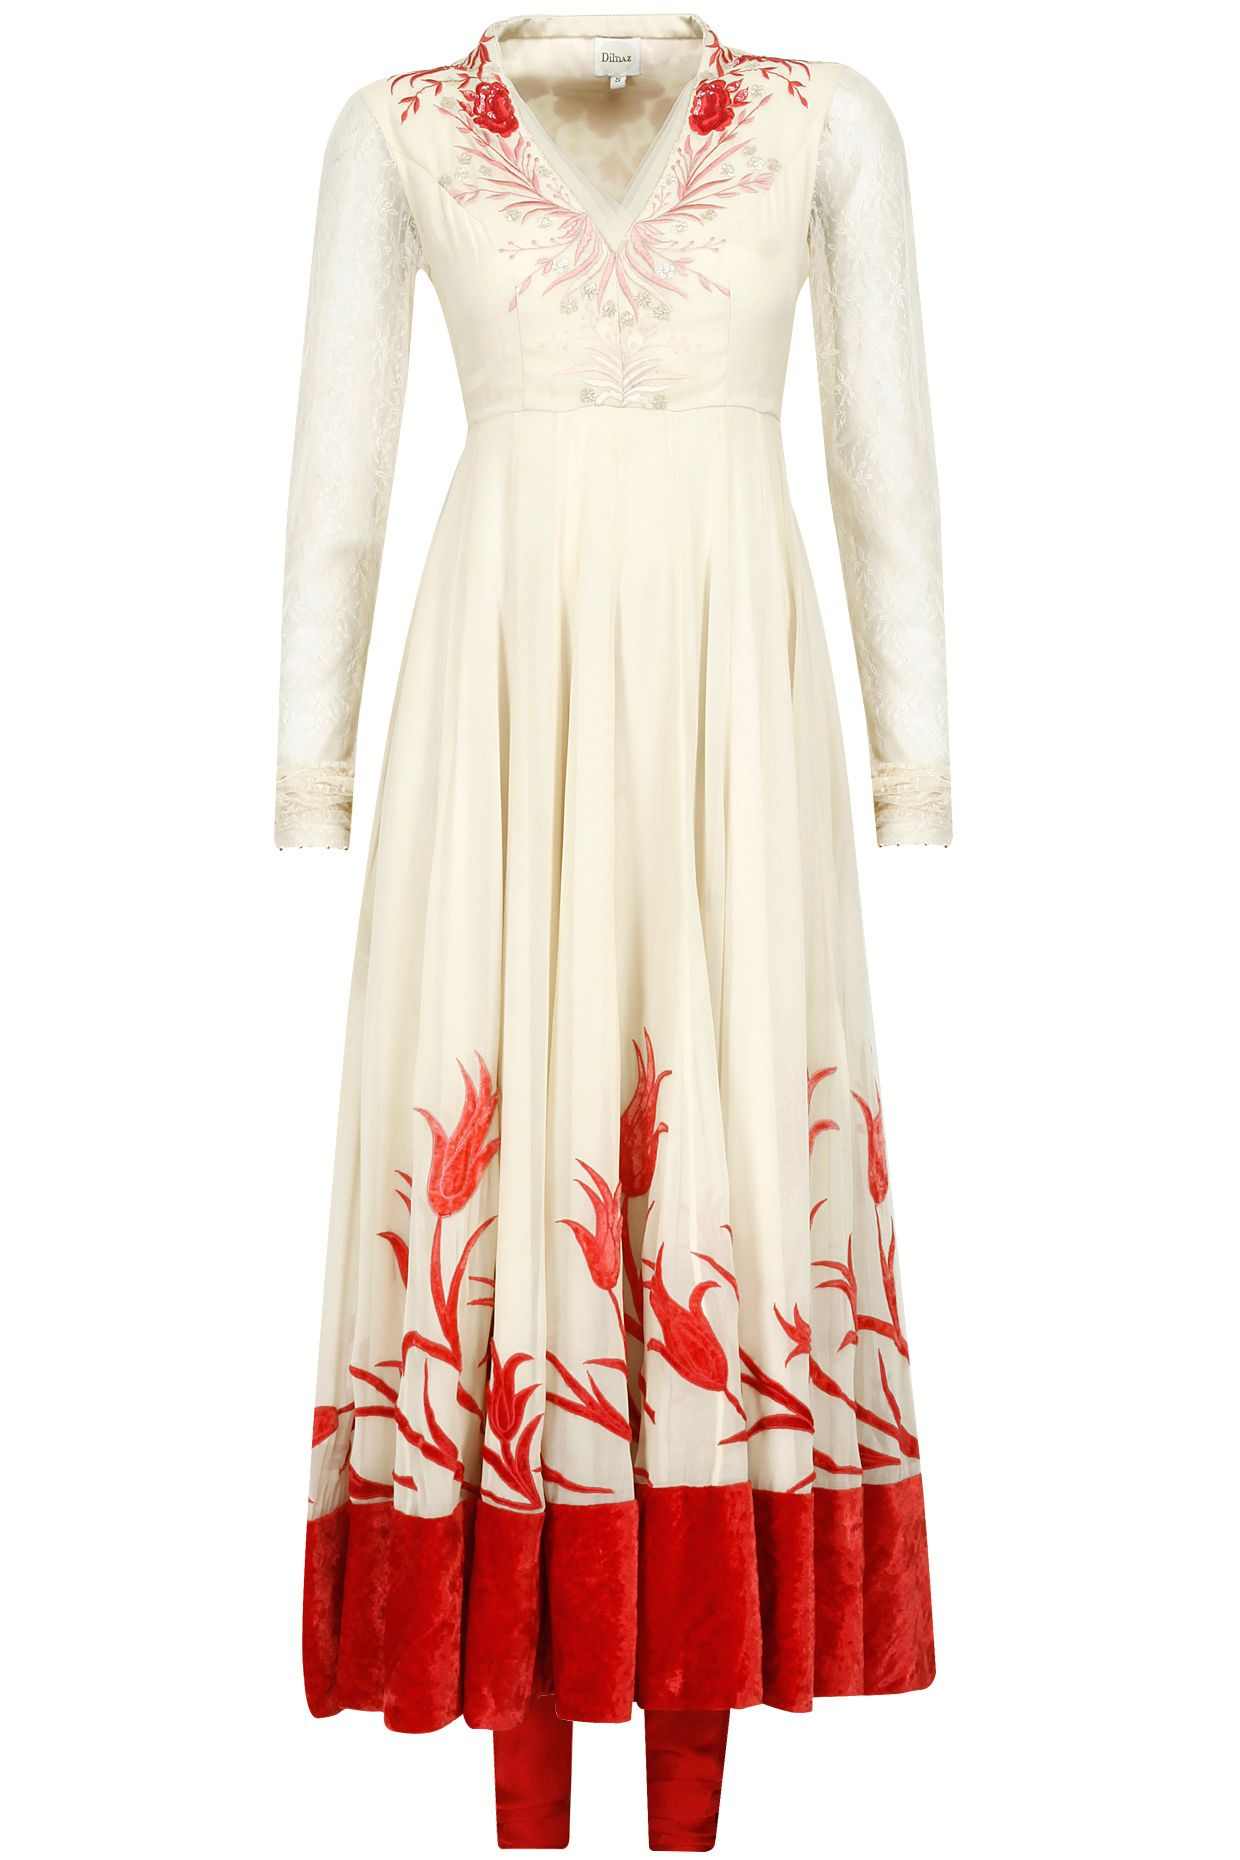 Biscuit beige and red thread embroidered kurta set available only at Pernia's Pop-Up Shop.